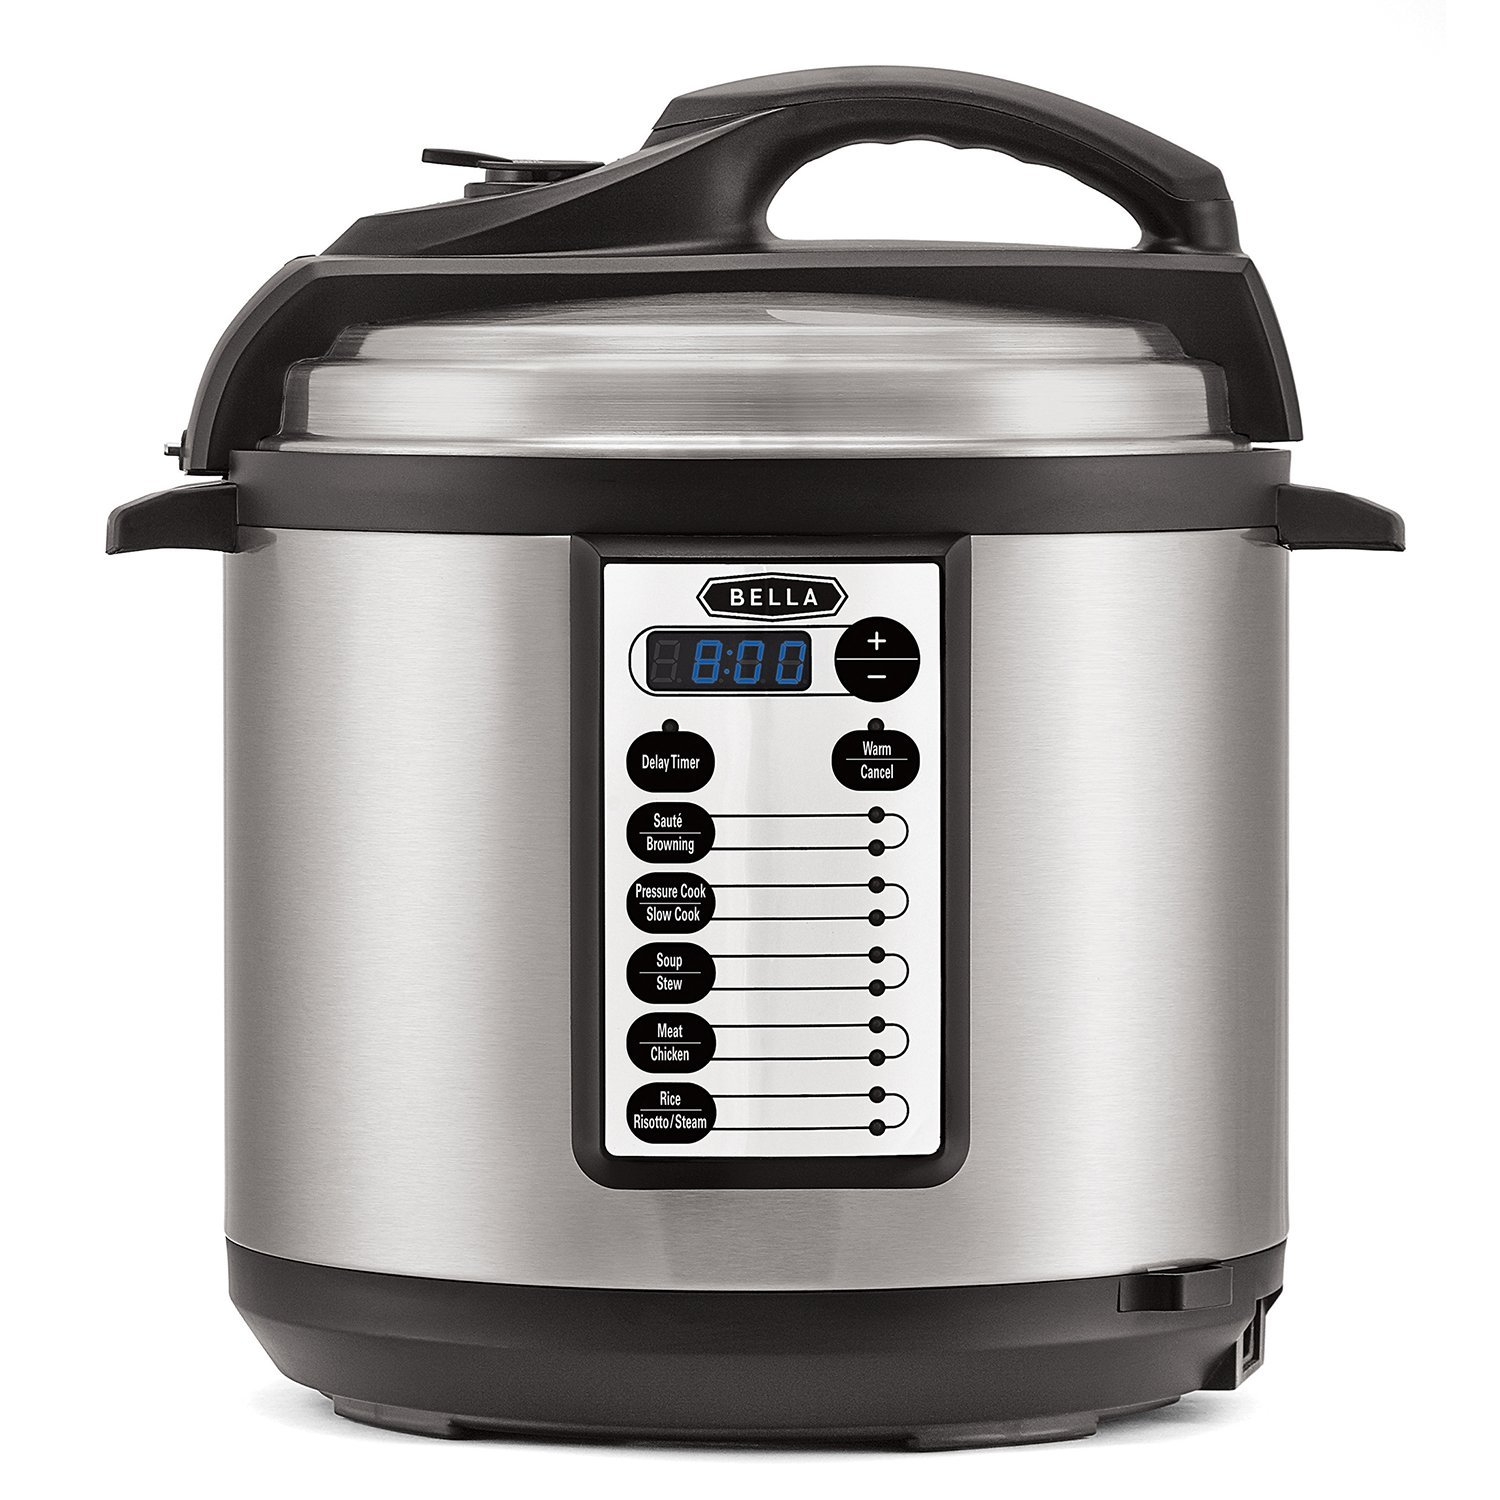 BELLA BLA14467 6 Qt 10-In-1 Multi-Use Programmable Pressure Cooker, Slow Cooker, Rice Cooker, Steamer, Saute, Warmer with Searing and Browning Feature, 1000 Watts by BELLA